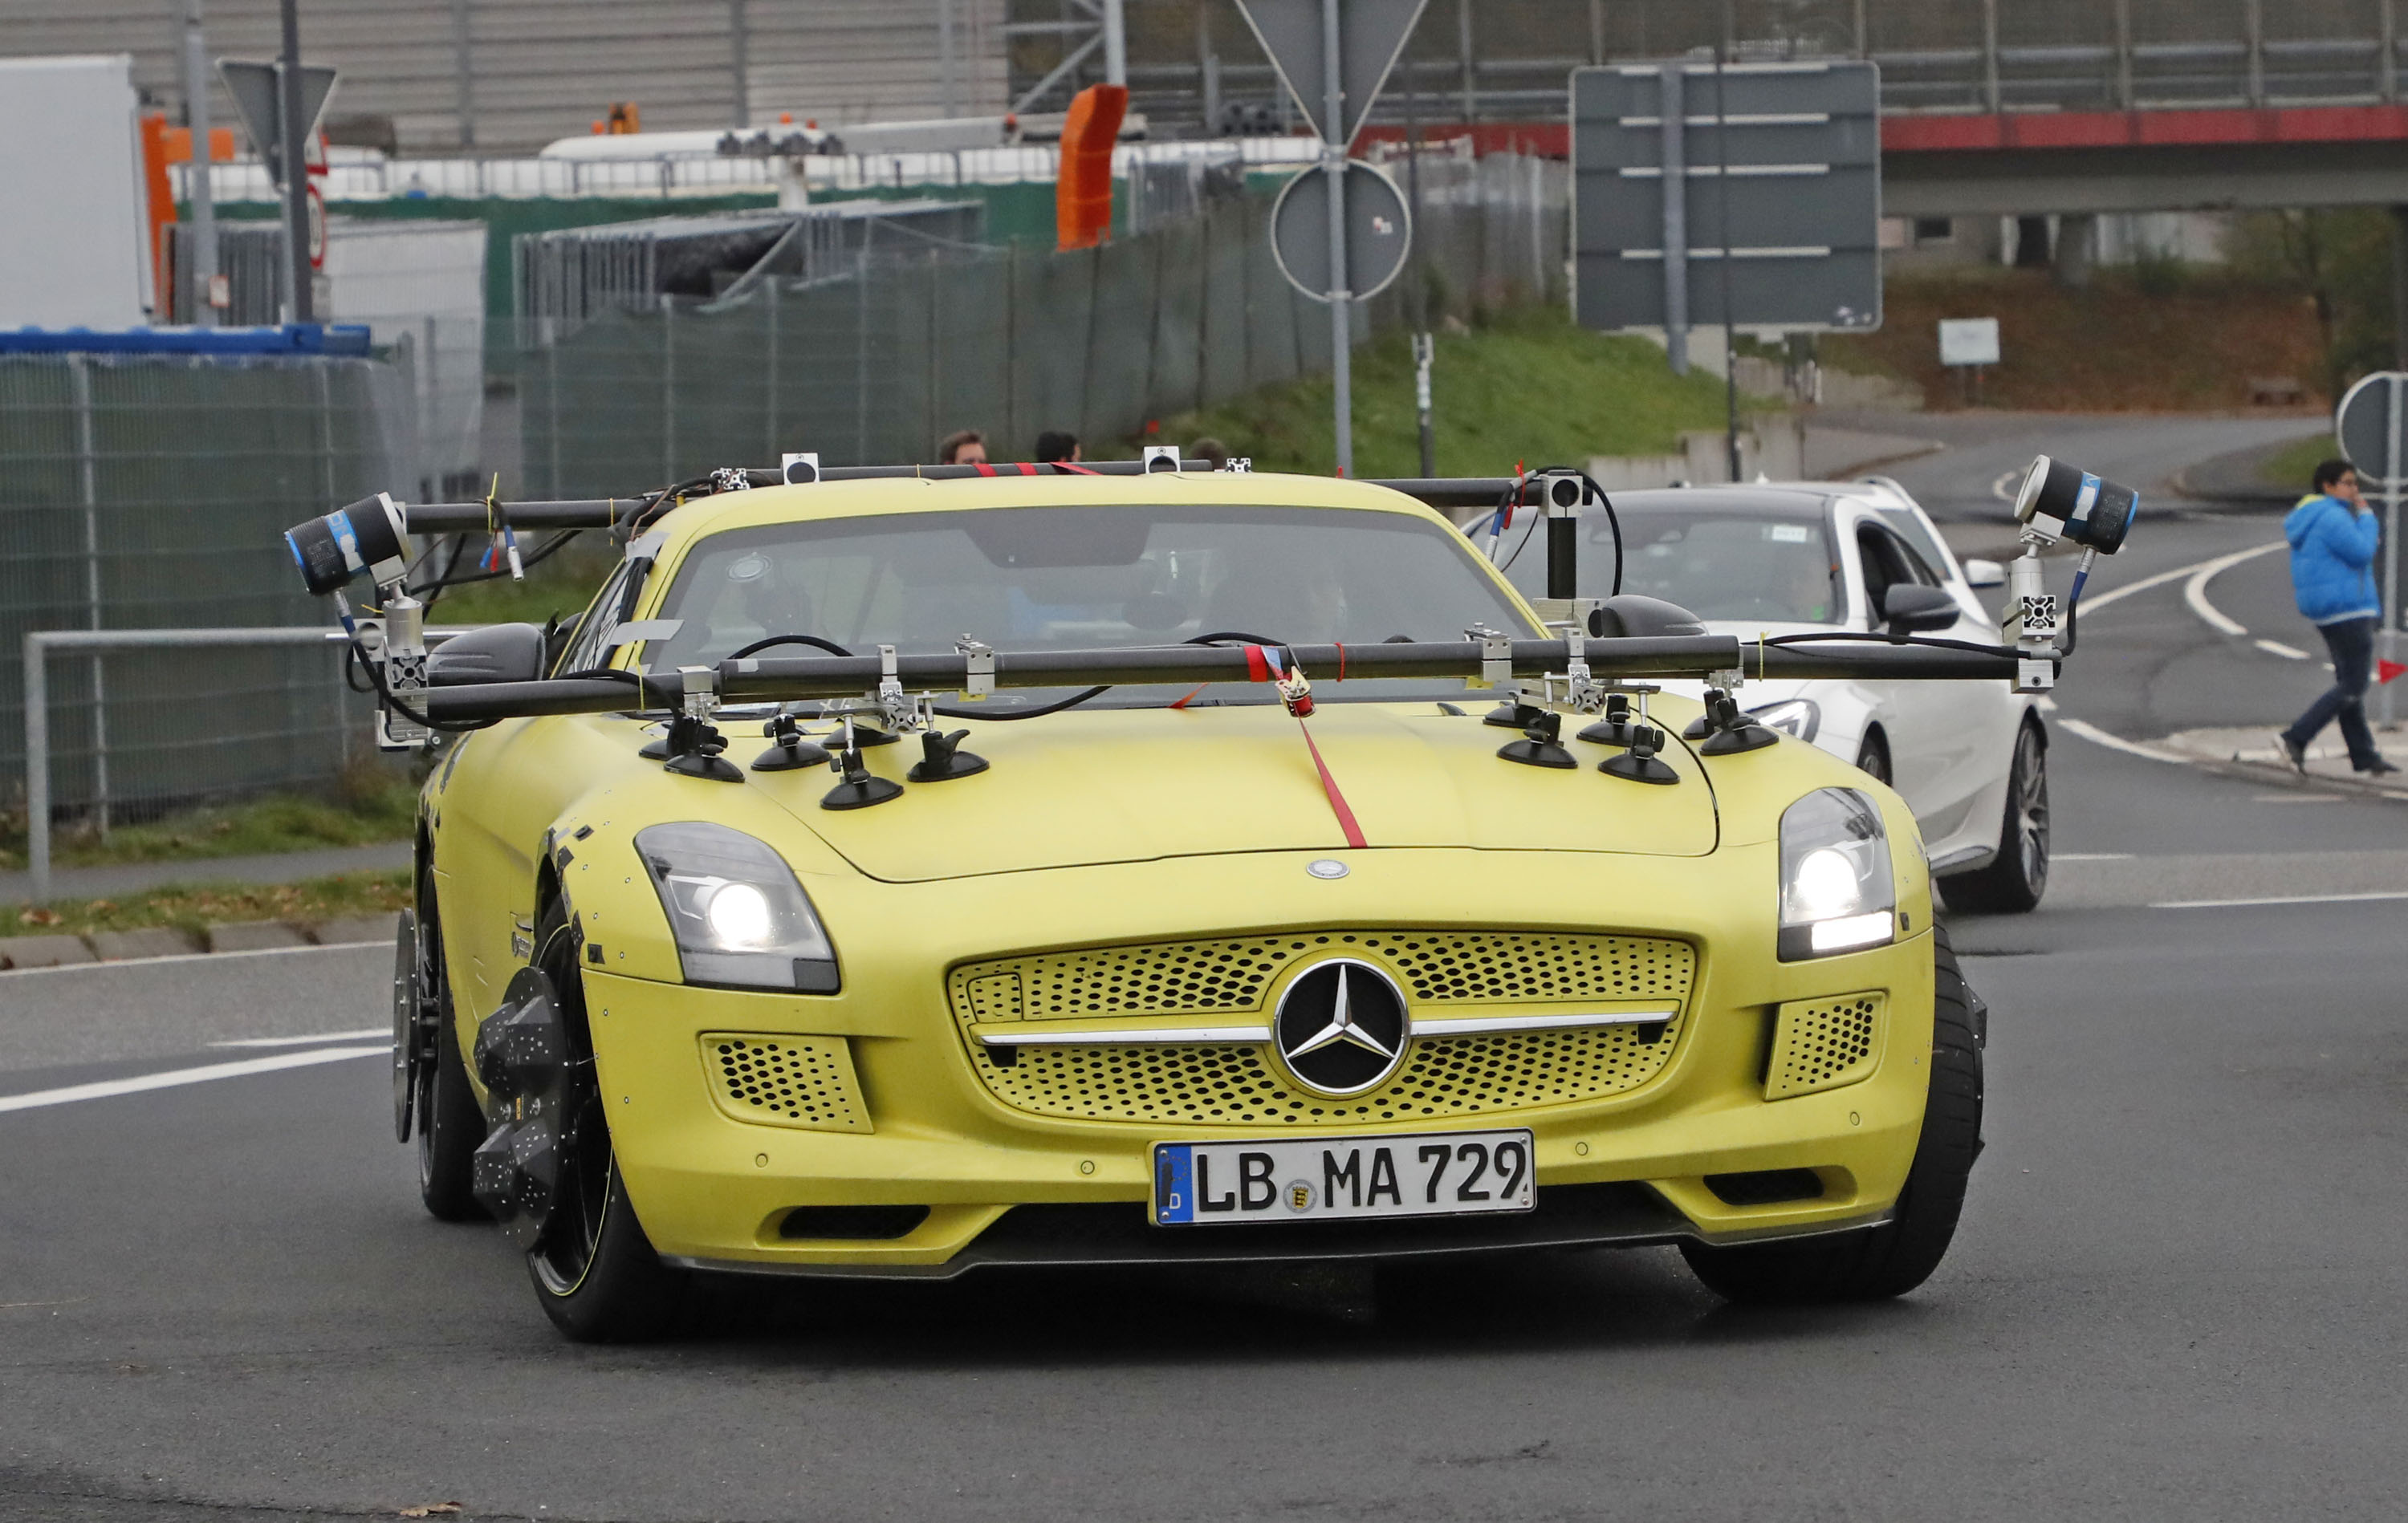 Mercedes Sls Amg Gt >> What In The World Is Mercedes Doing With This Sls Amg